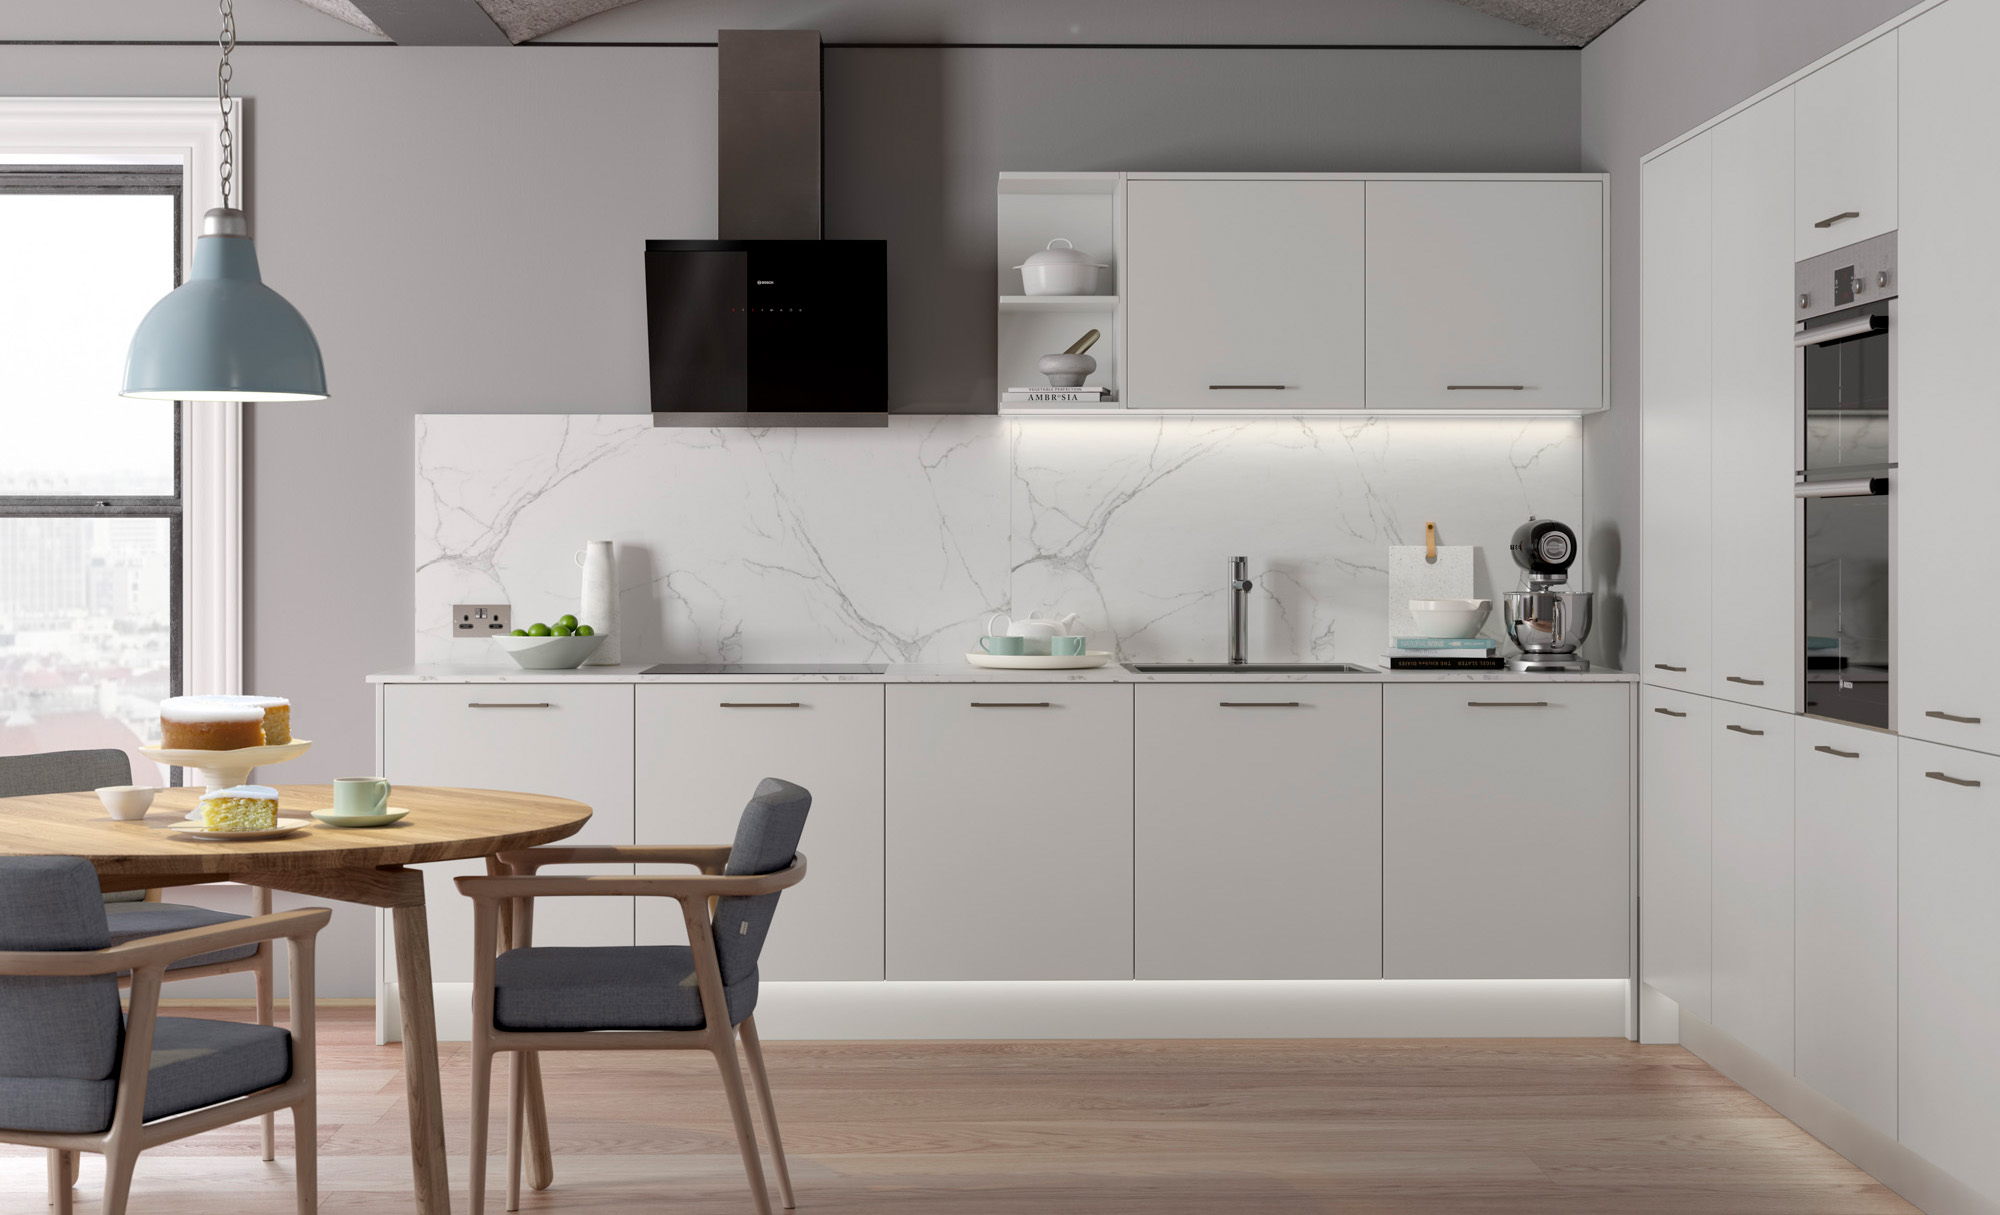 Kitchen Cabinets Colours And Styles in 2021